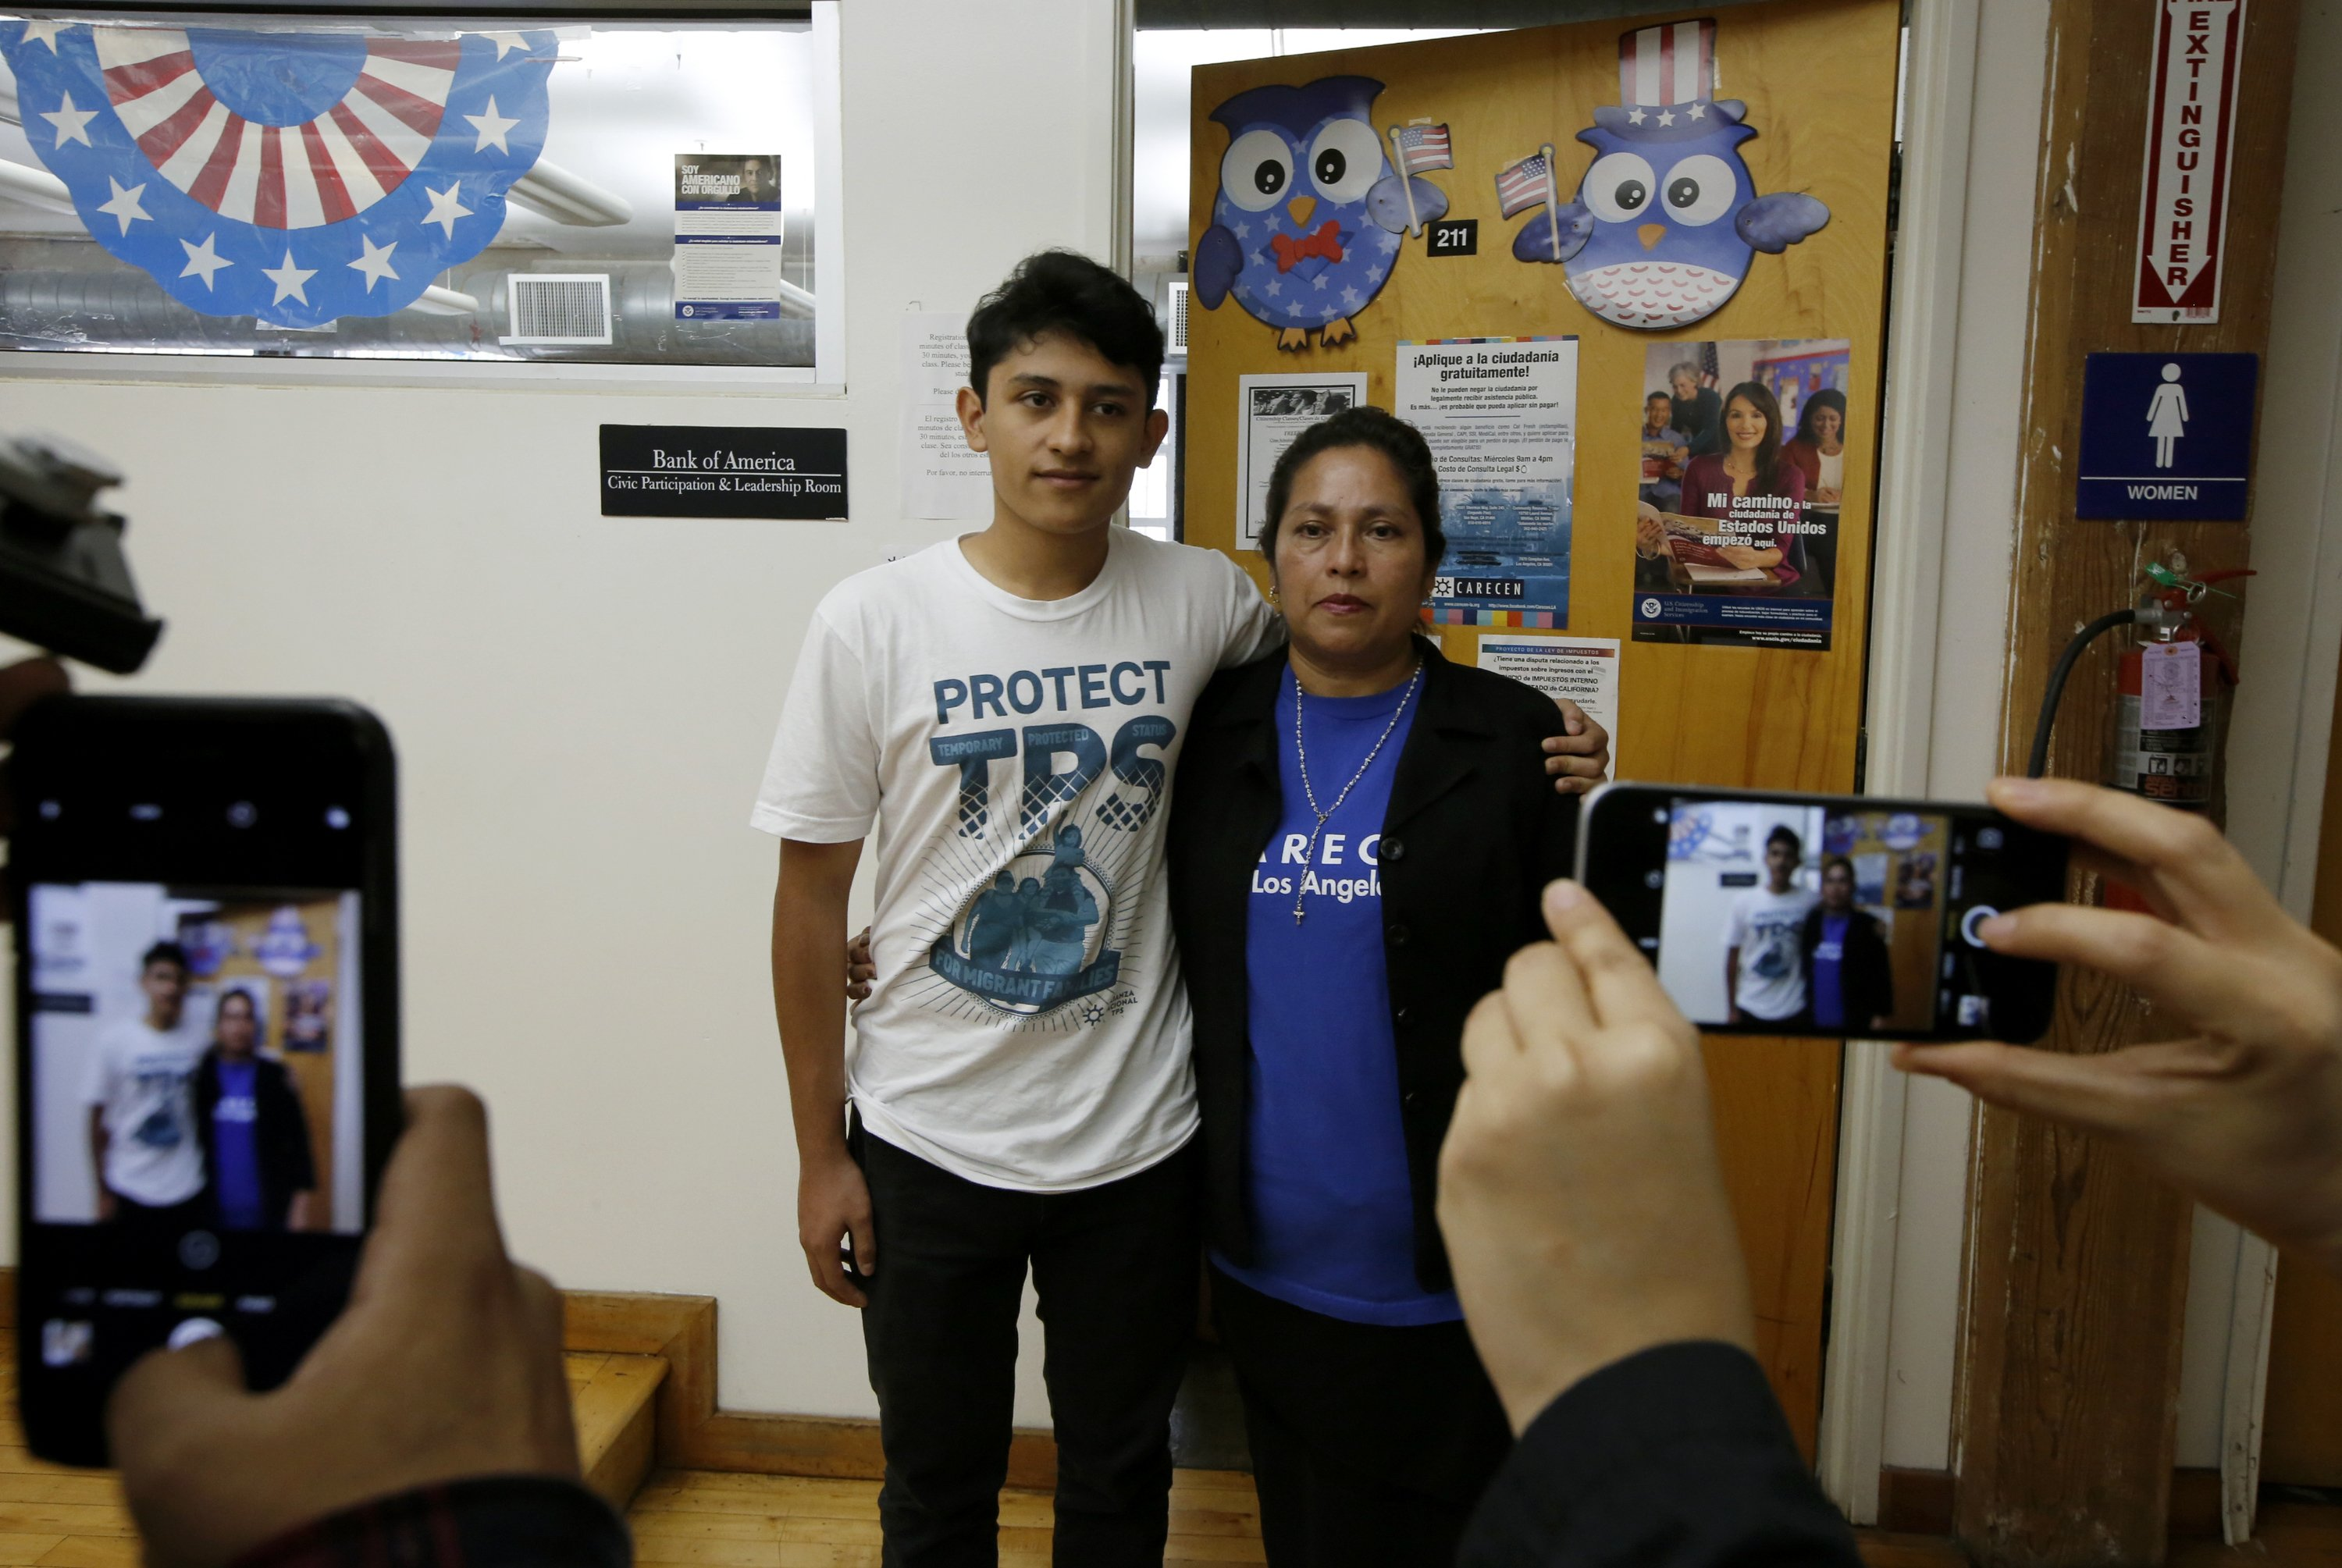 US ends protections for Salvadoran immigrants, sparking fear